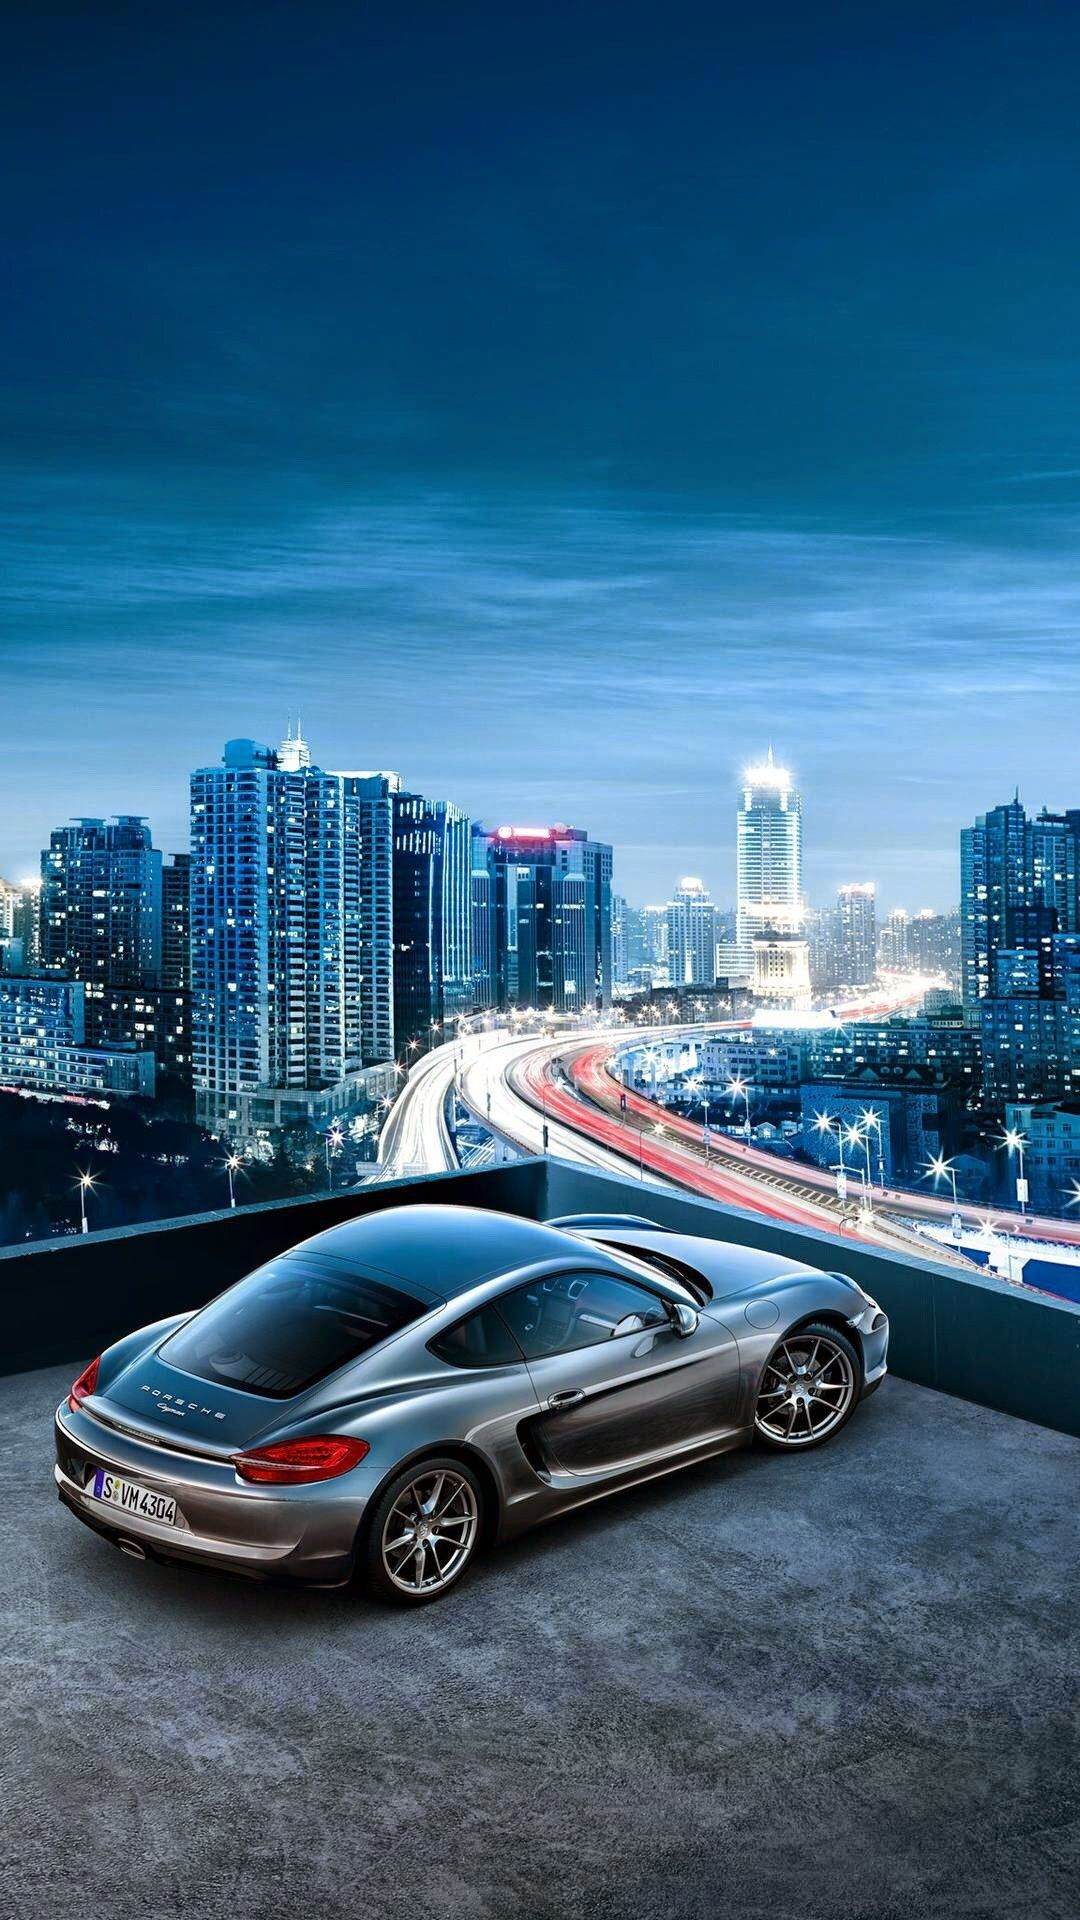 Pin By Zenzone On Phone Wallpapers Cars Porsche Android